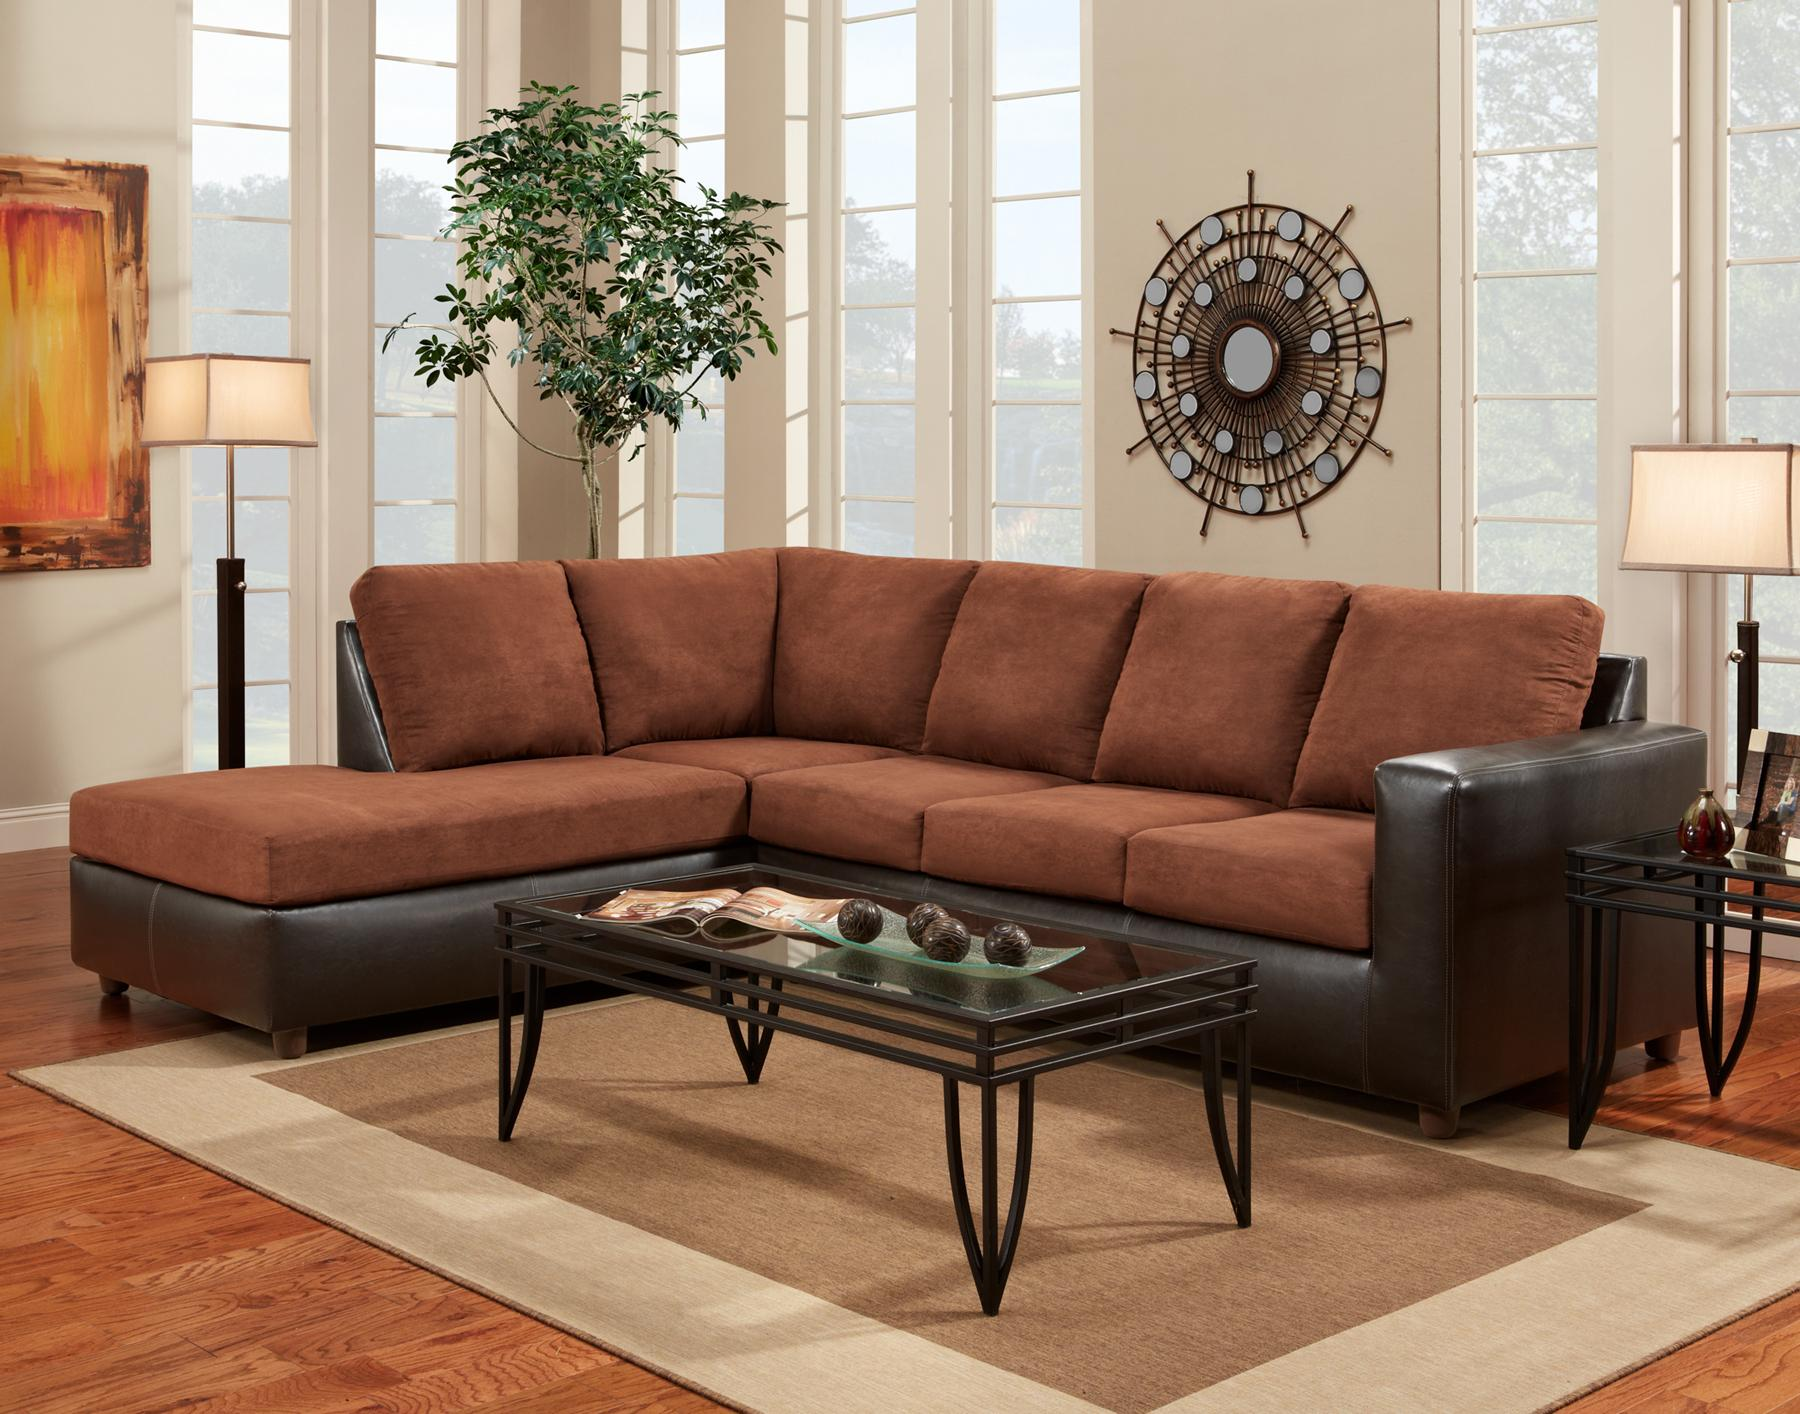 Affordable Furniture 3650 Sofa Sectional Wilcox Furniture Sectional Sofas